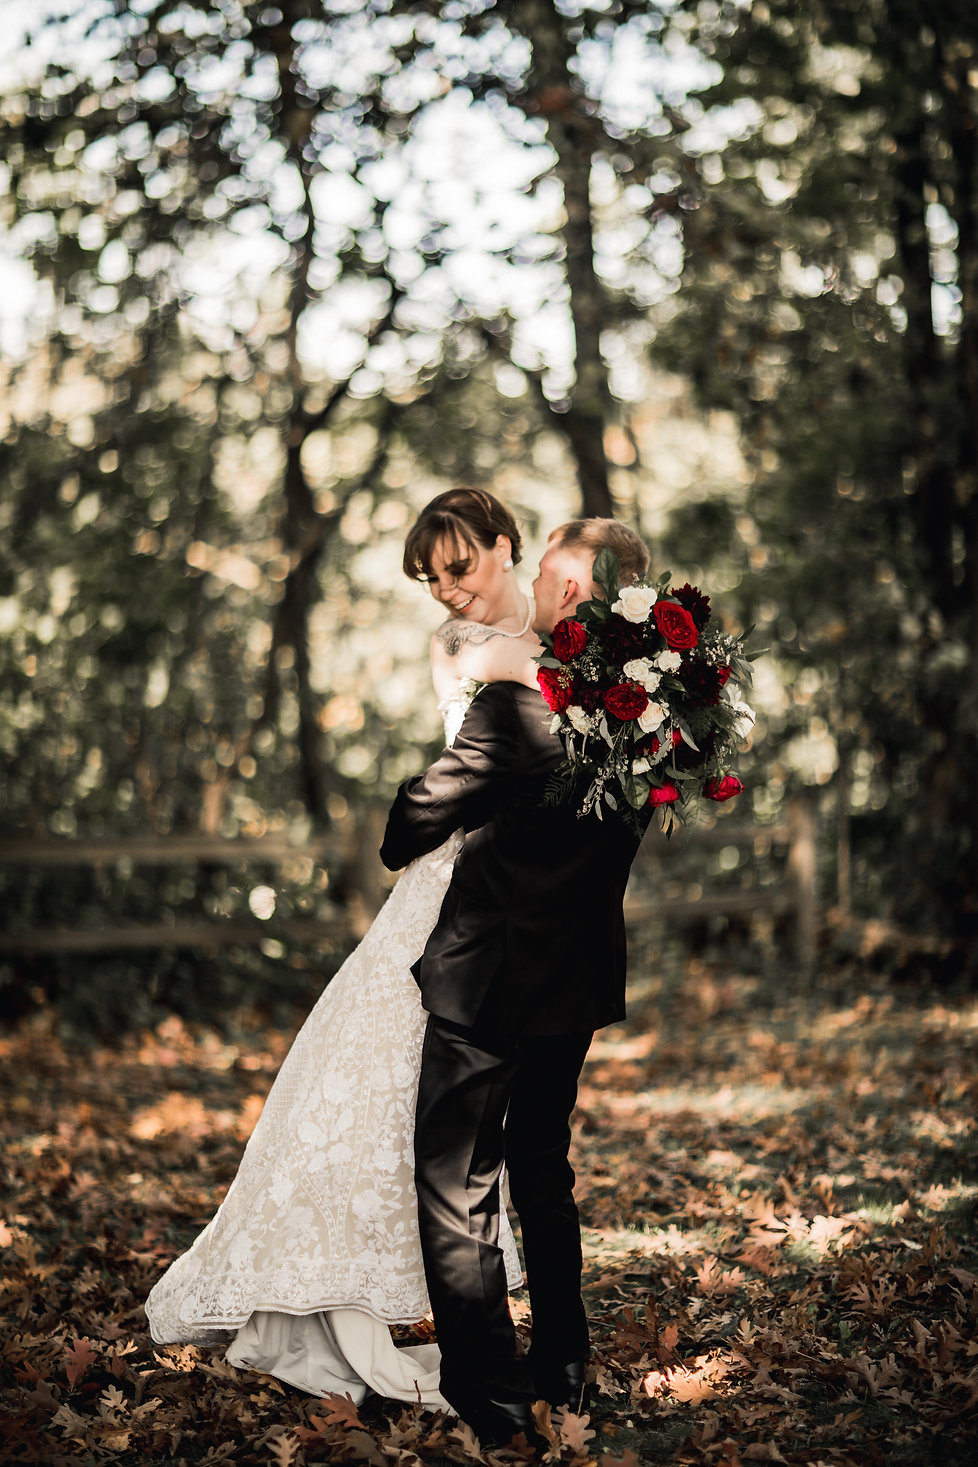 2019Sarah+ThomasGordon-186.jpg